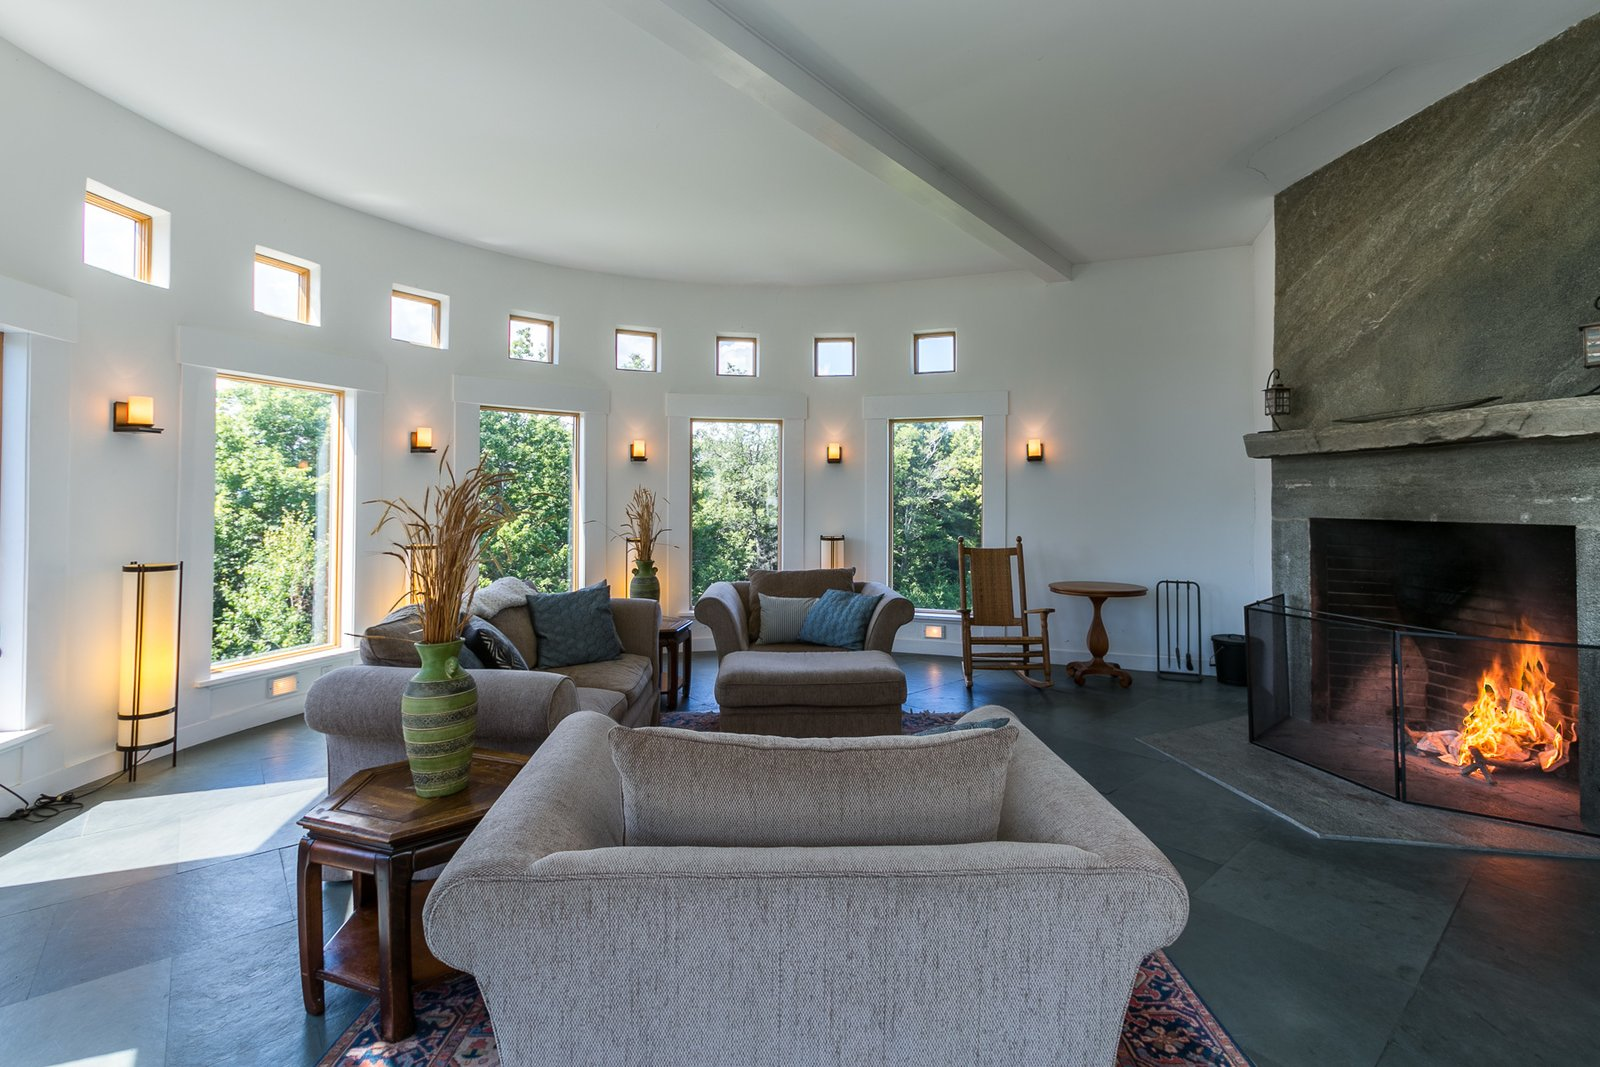 The circular living area features a granite fireplace.